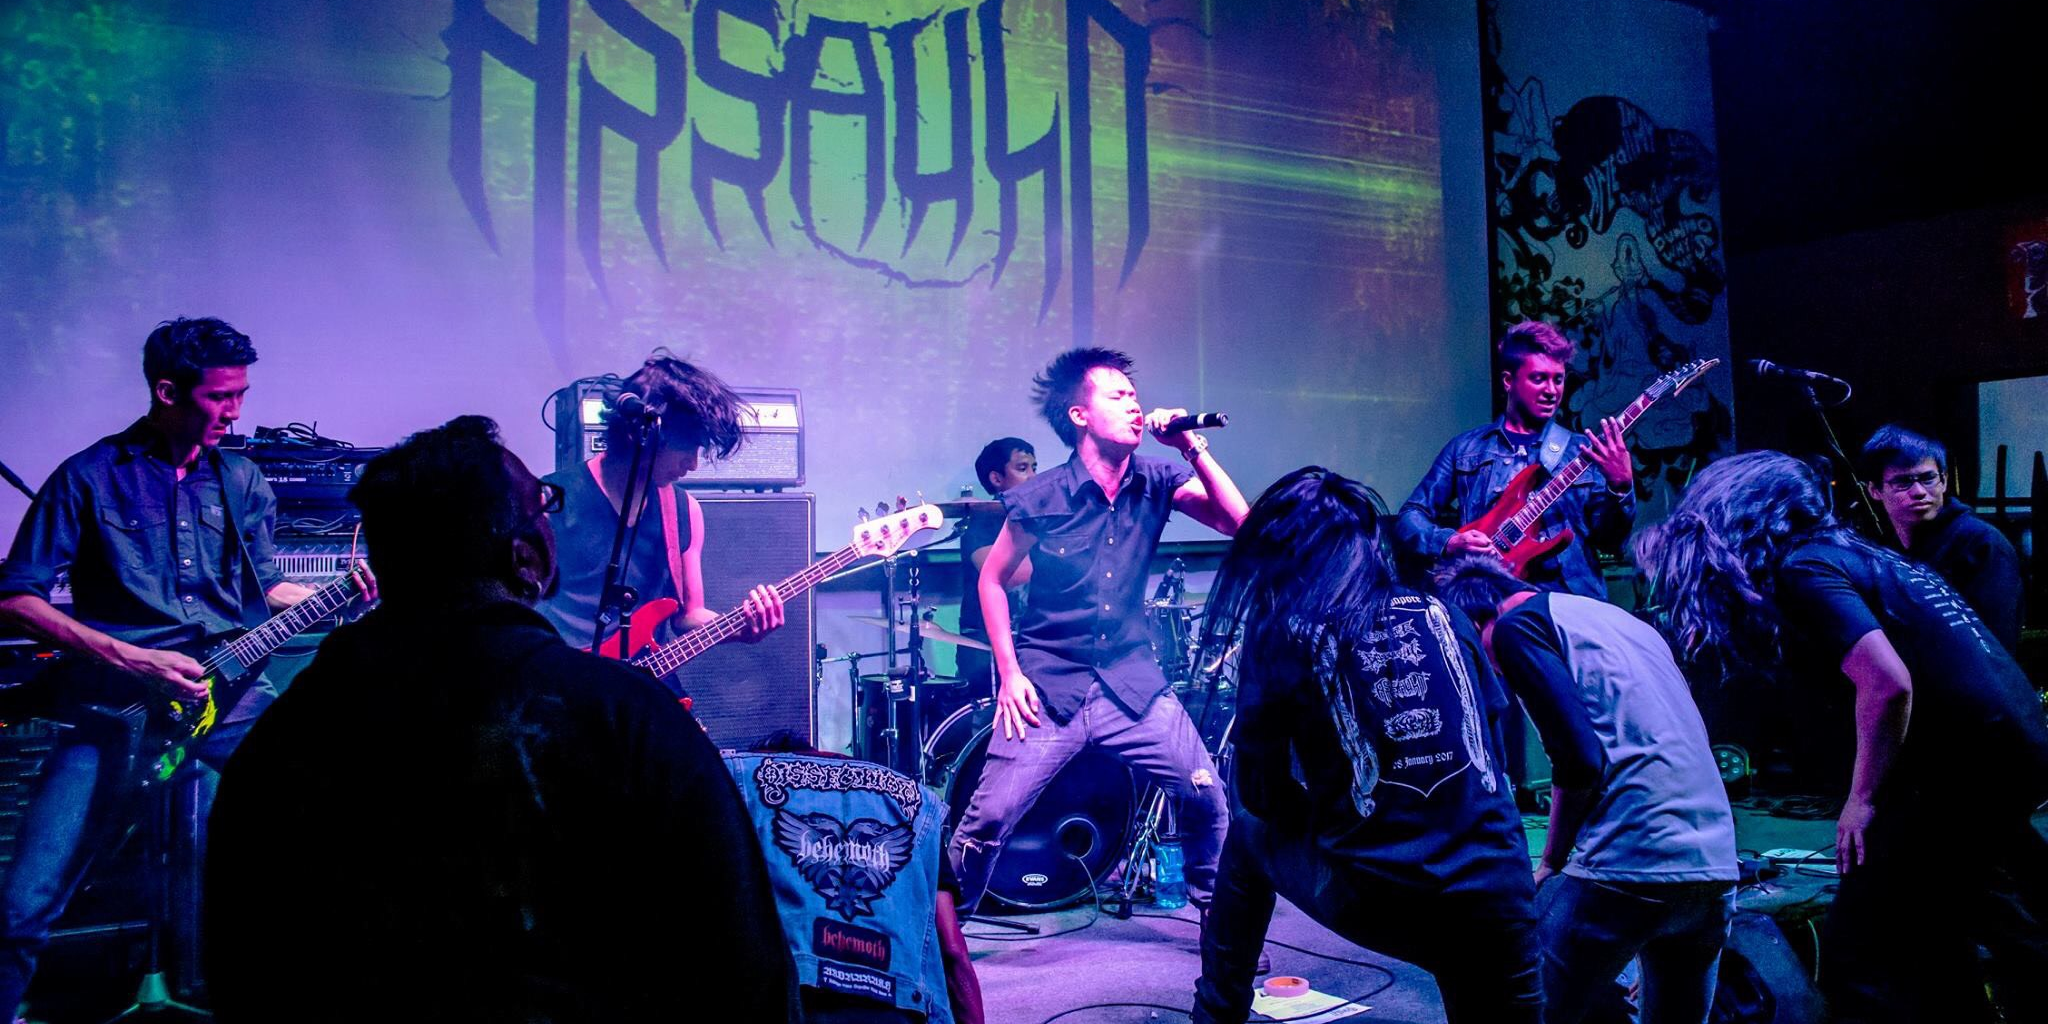 LISTEN: Assault release the first single off their upcoming album, 'Ghettos'